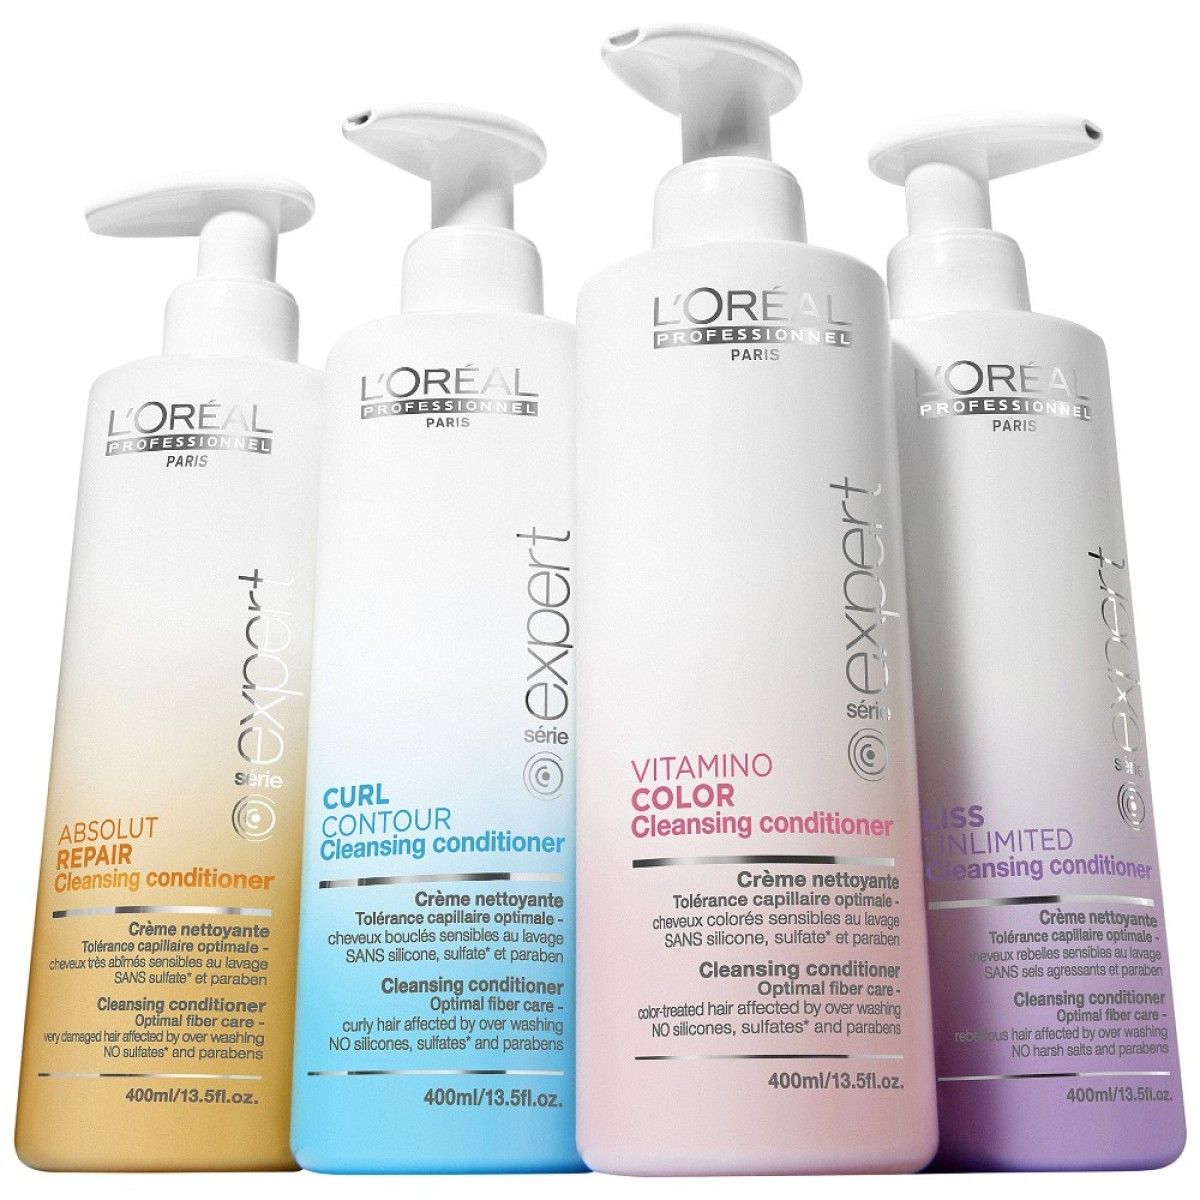 oreal cleansing cond